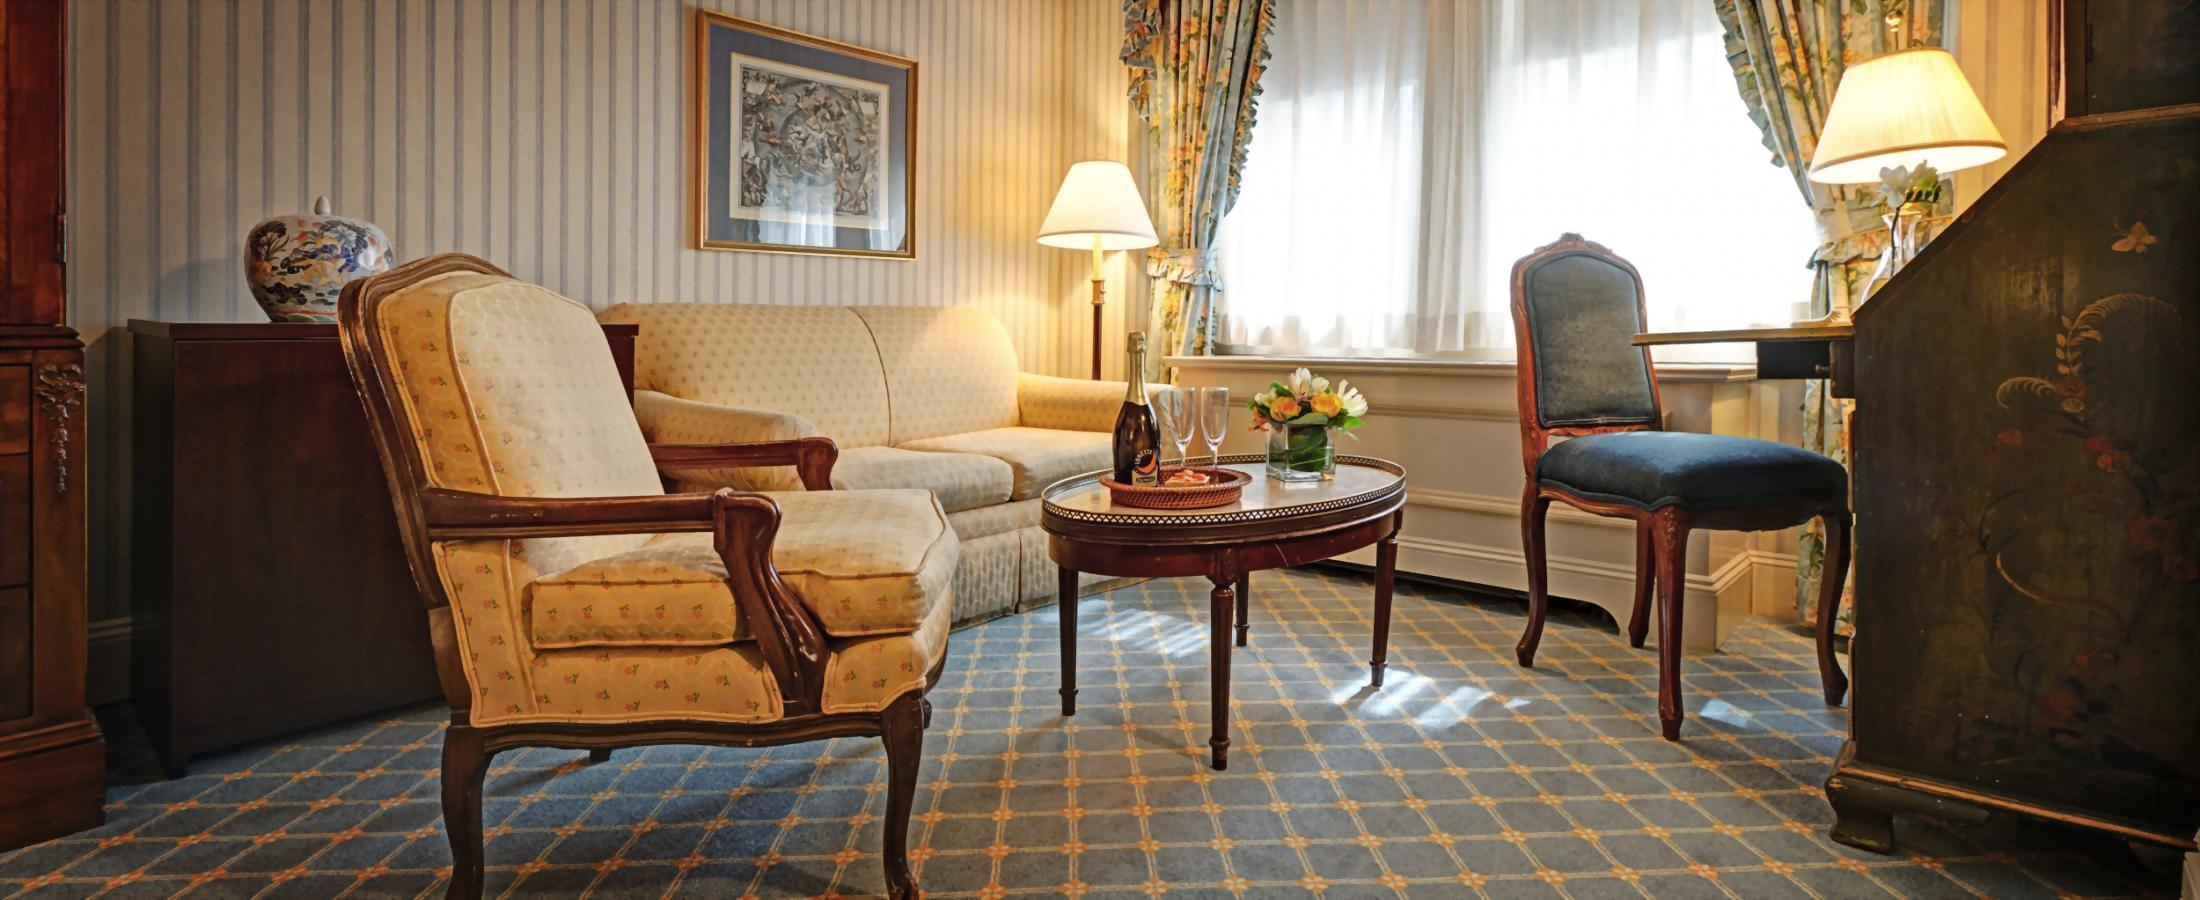 Deluxe Queen Room at the Hotel Elysée with one queen bed and sitting area